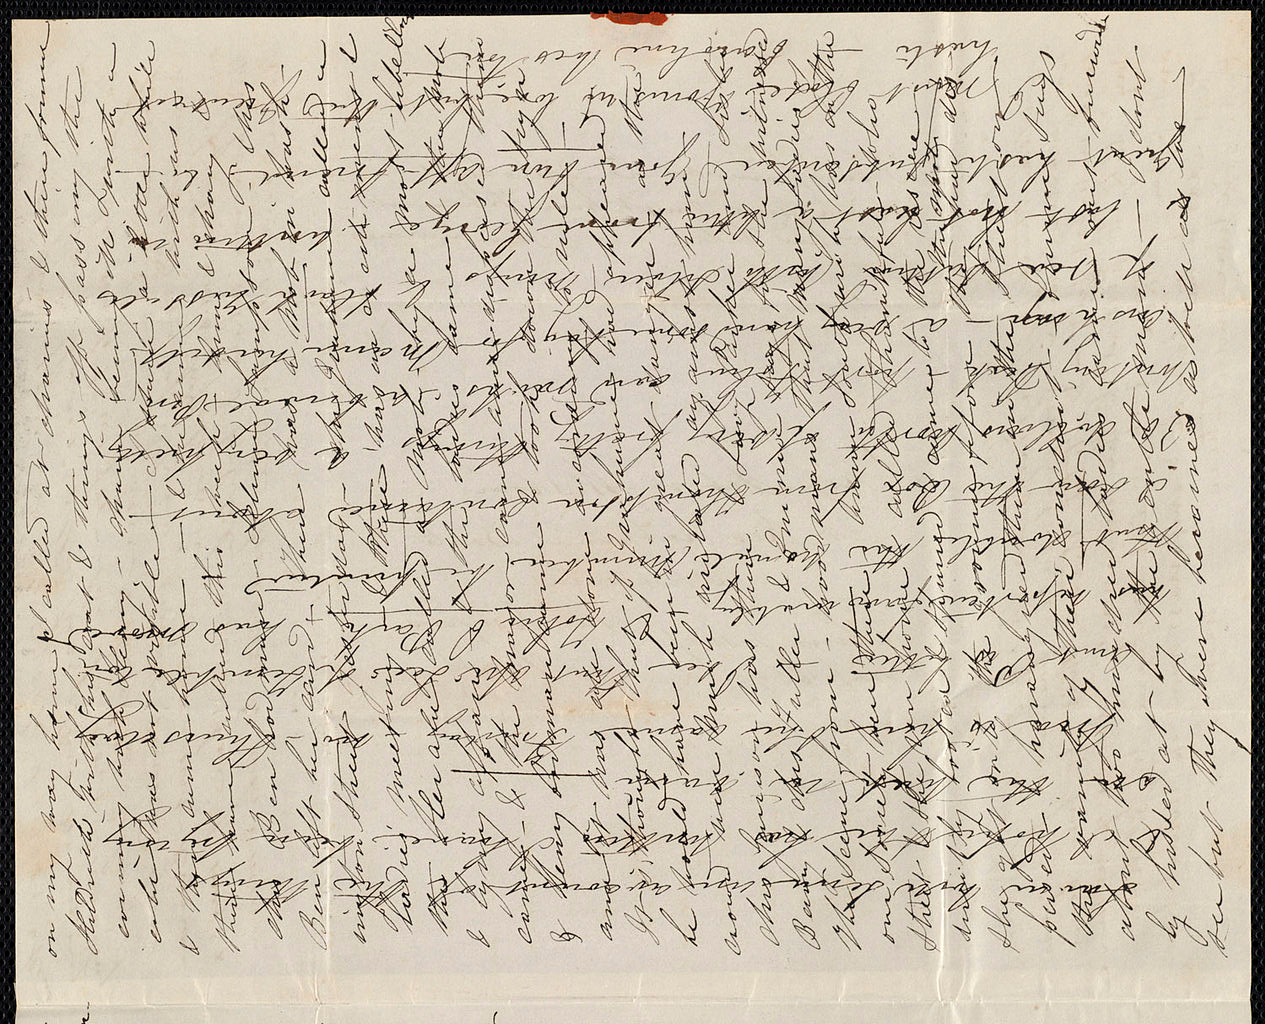 Example of a cross written letter to save paper and postage, much as the Austens sent to each other. The recipient of the letter paid for the postage. Paper was saved by cross writing. Image in the public domain.